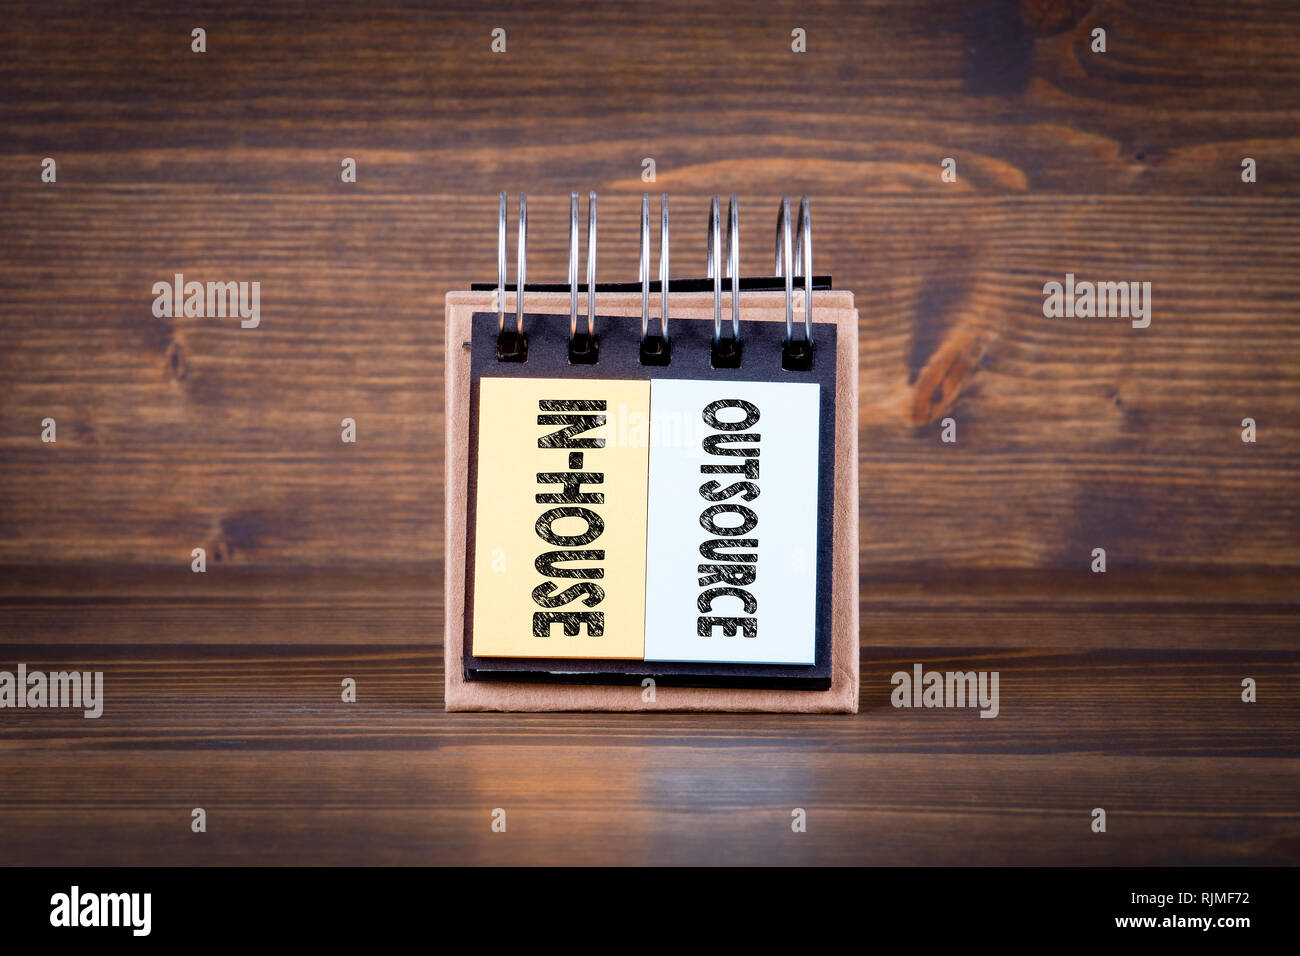 Outsource in-house concept. Notebook on dark wood background - Stock Image